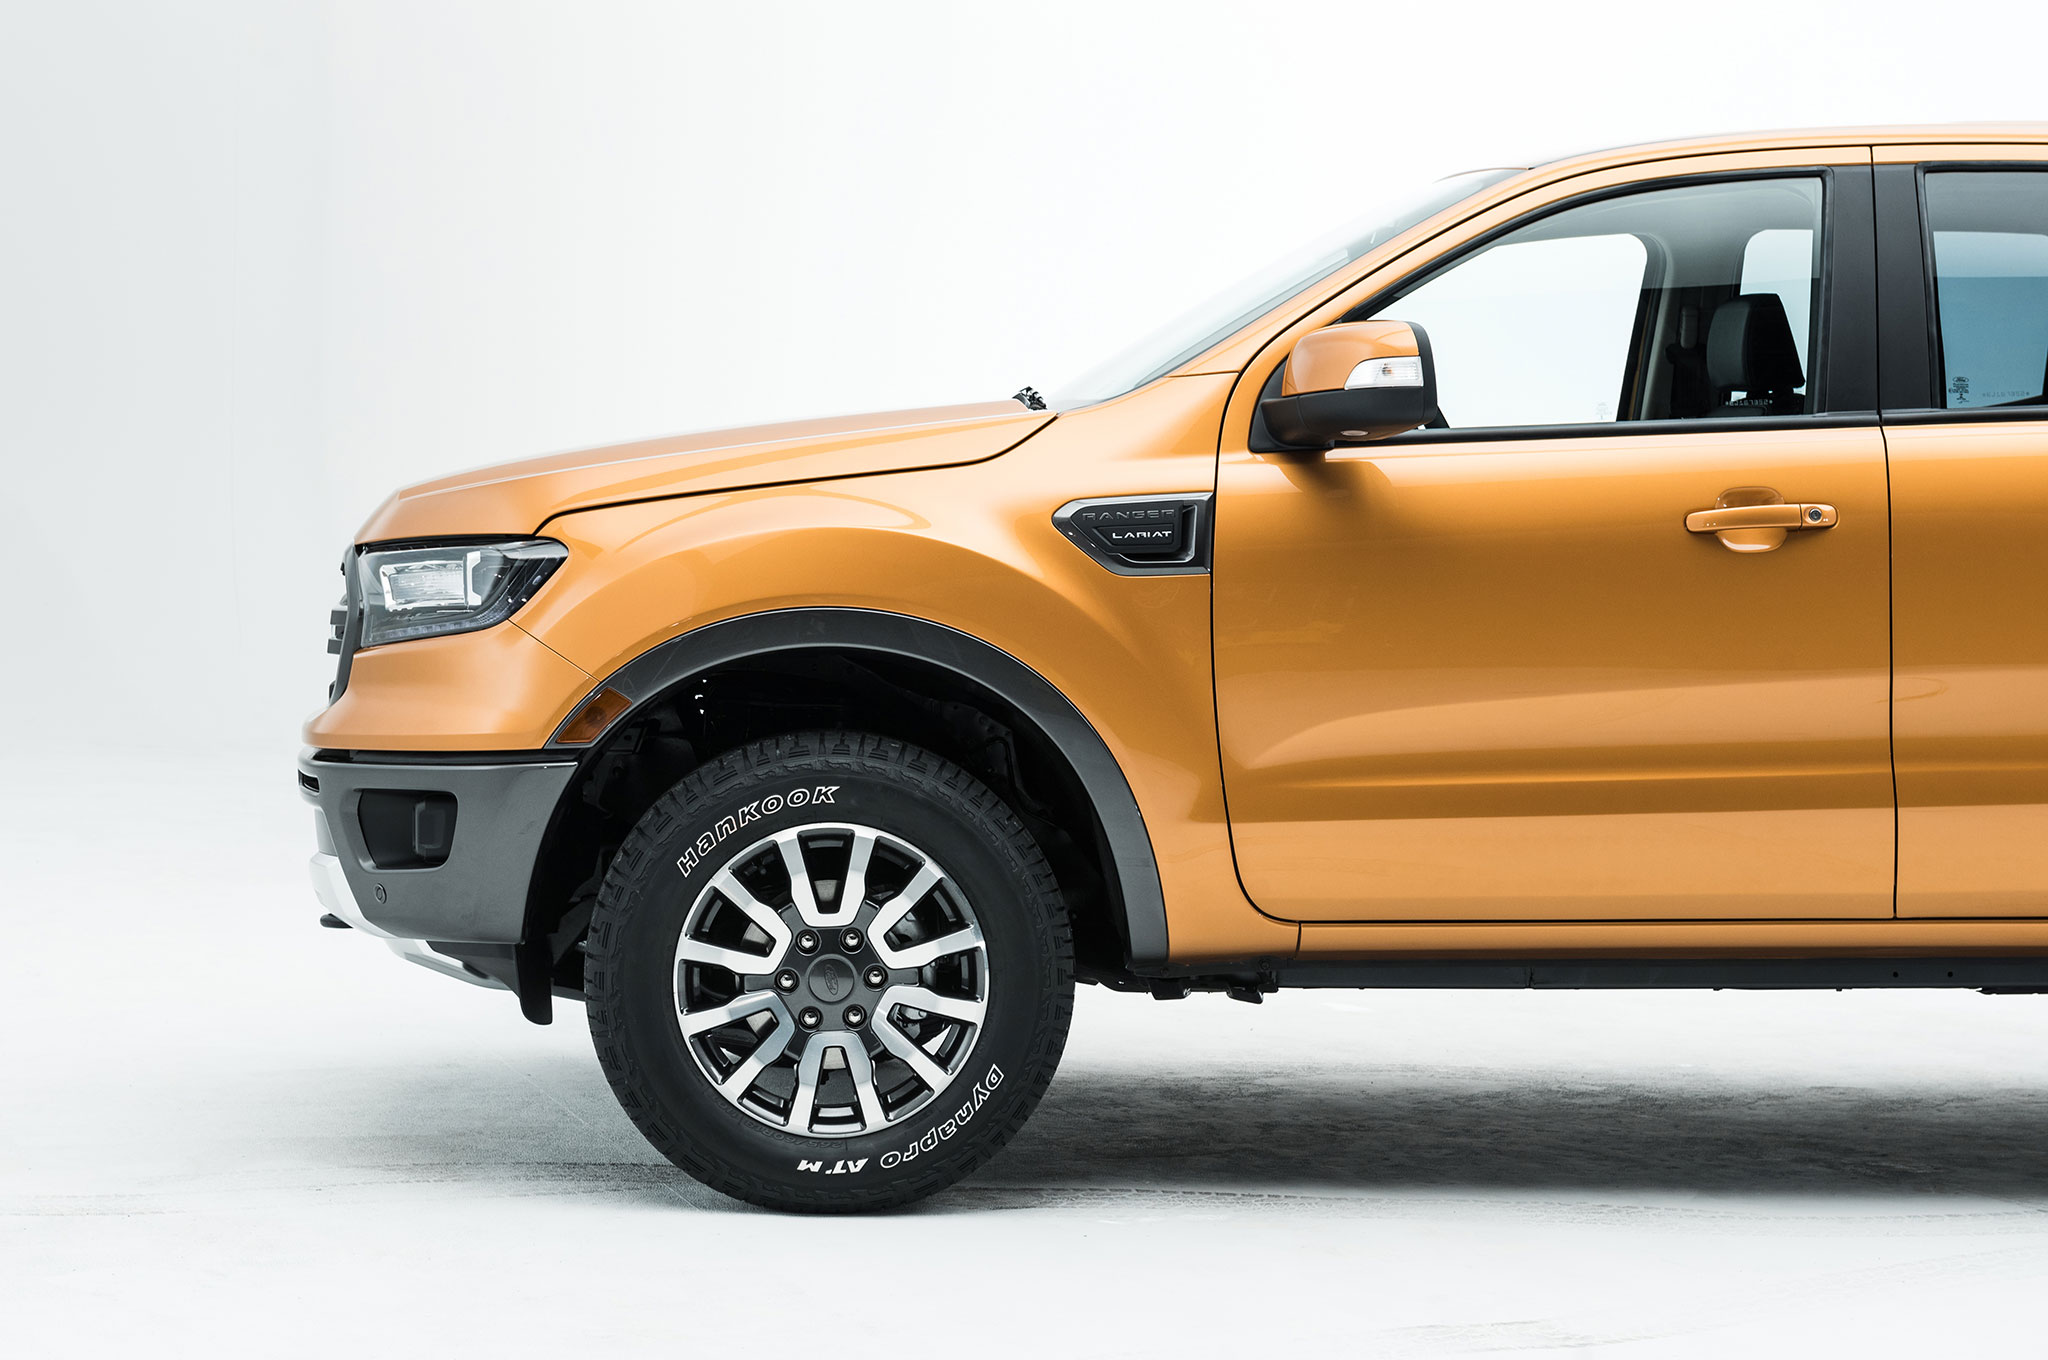 2019 Ford Ranger Regular Cab >> 2019 Ford Ranger Arrives in Dealerships Early Next Year   Automobile Magazine